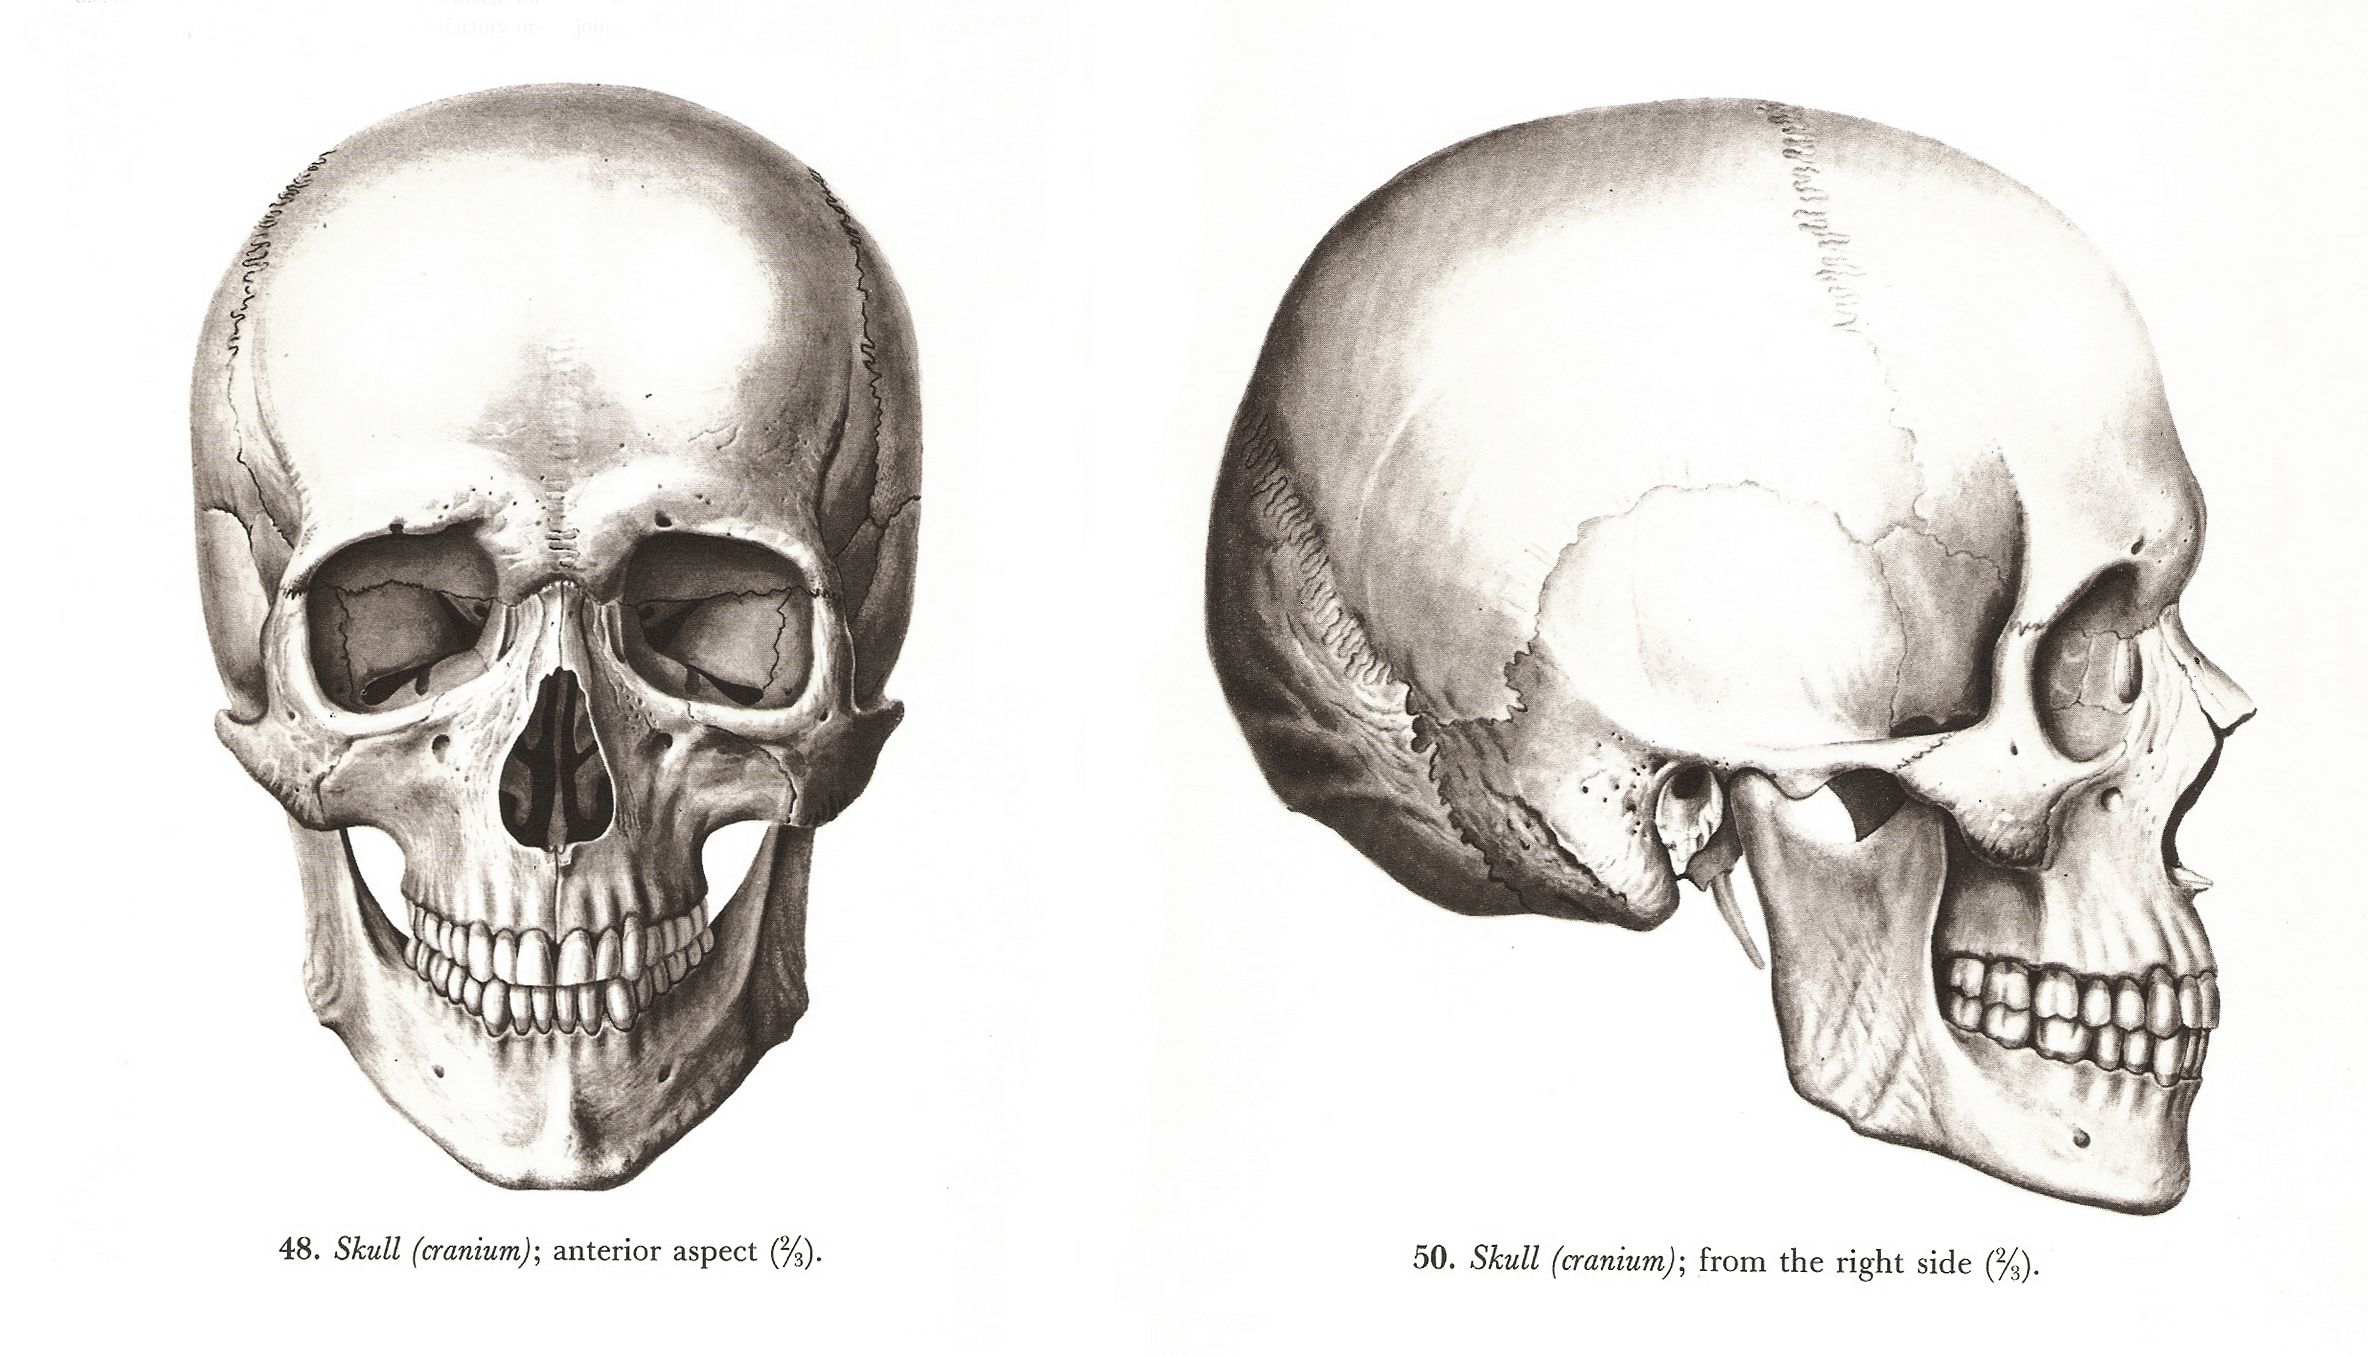 Human Skull Cranium Anterior And Right Side View